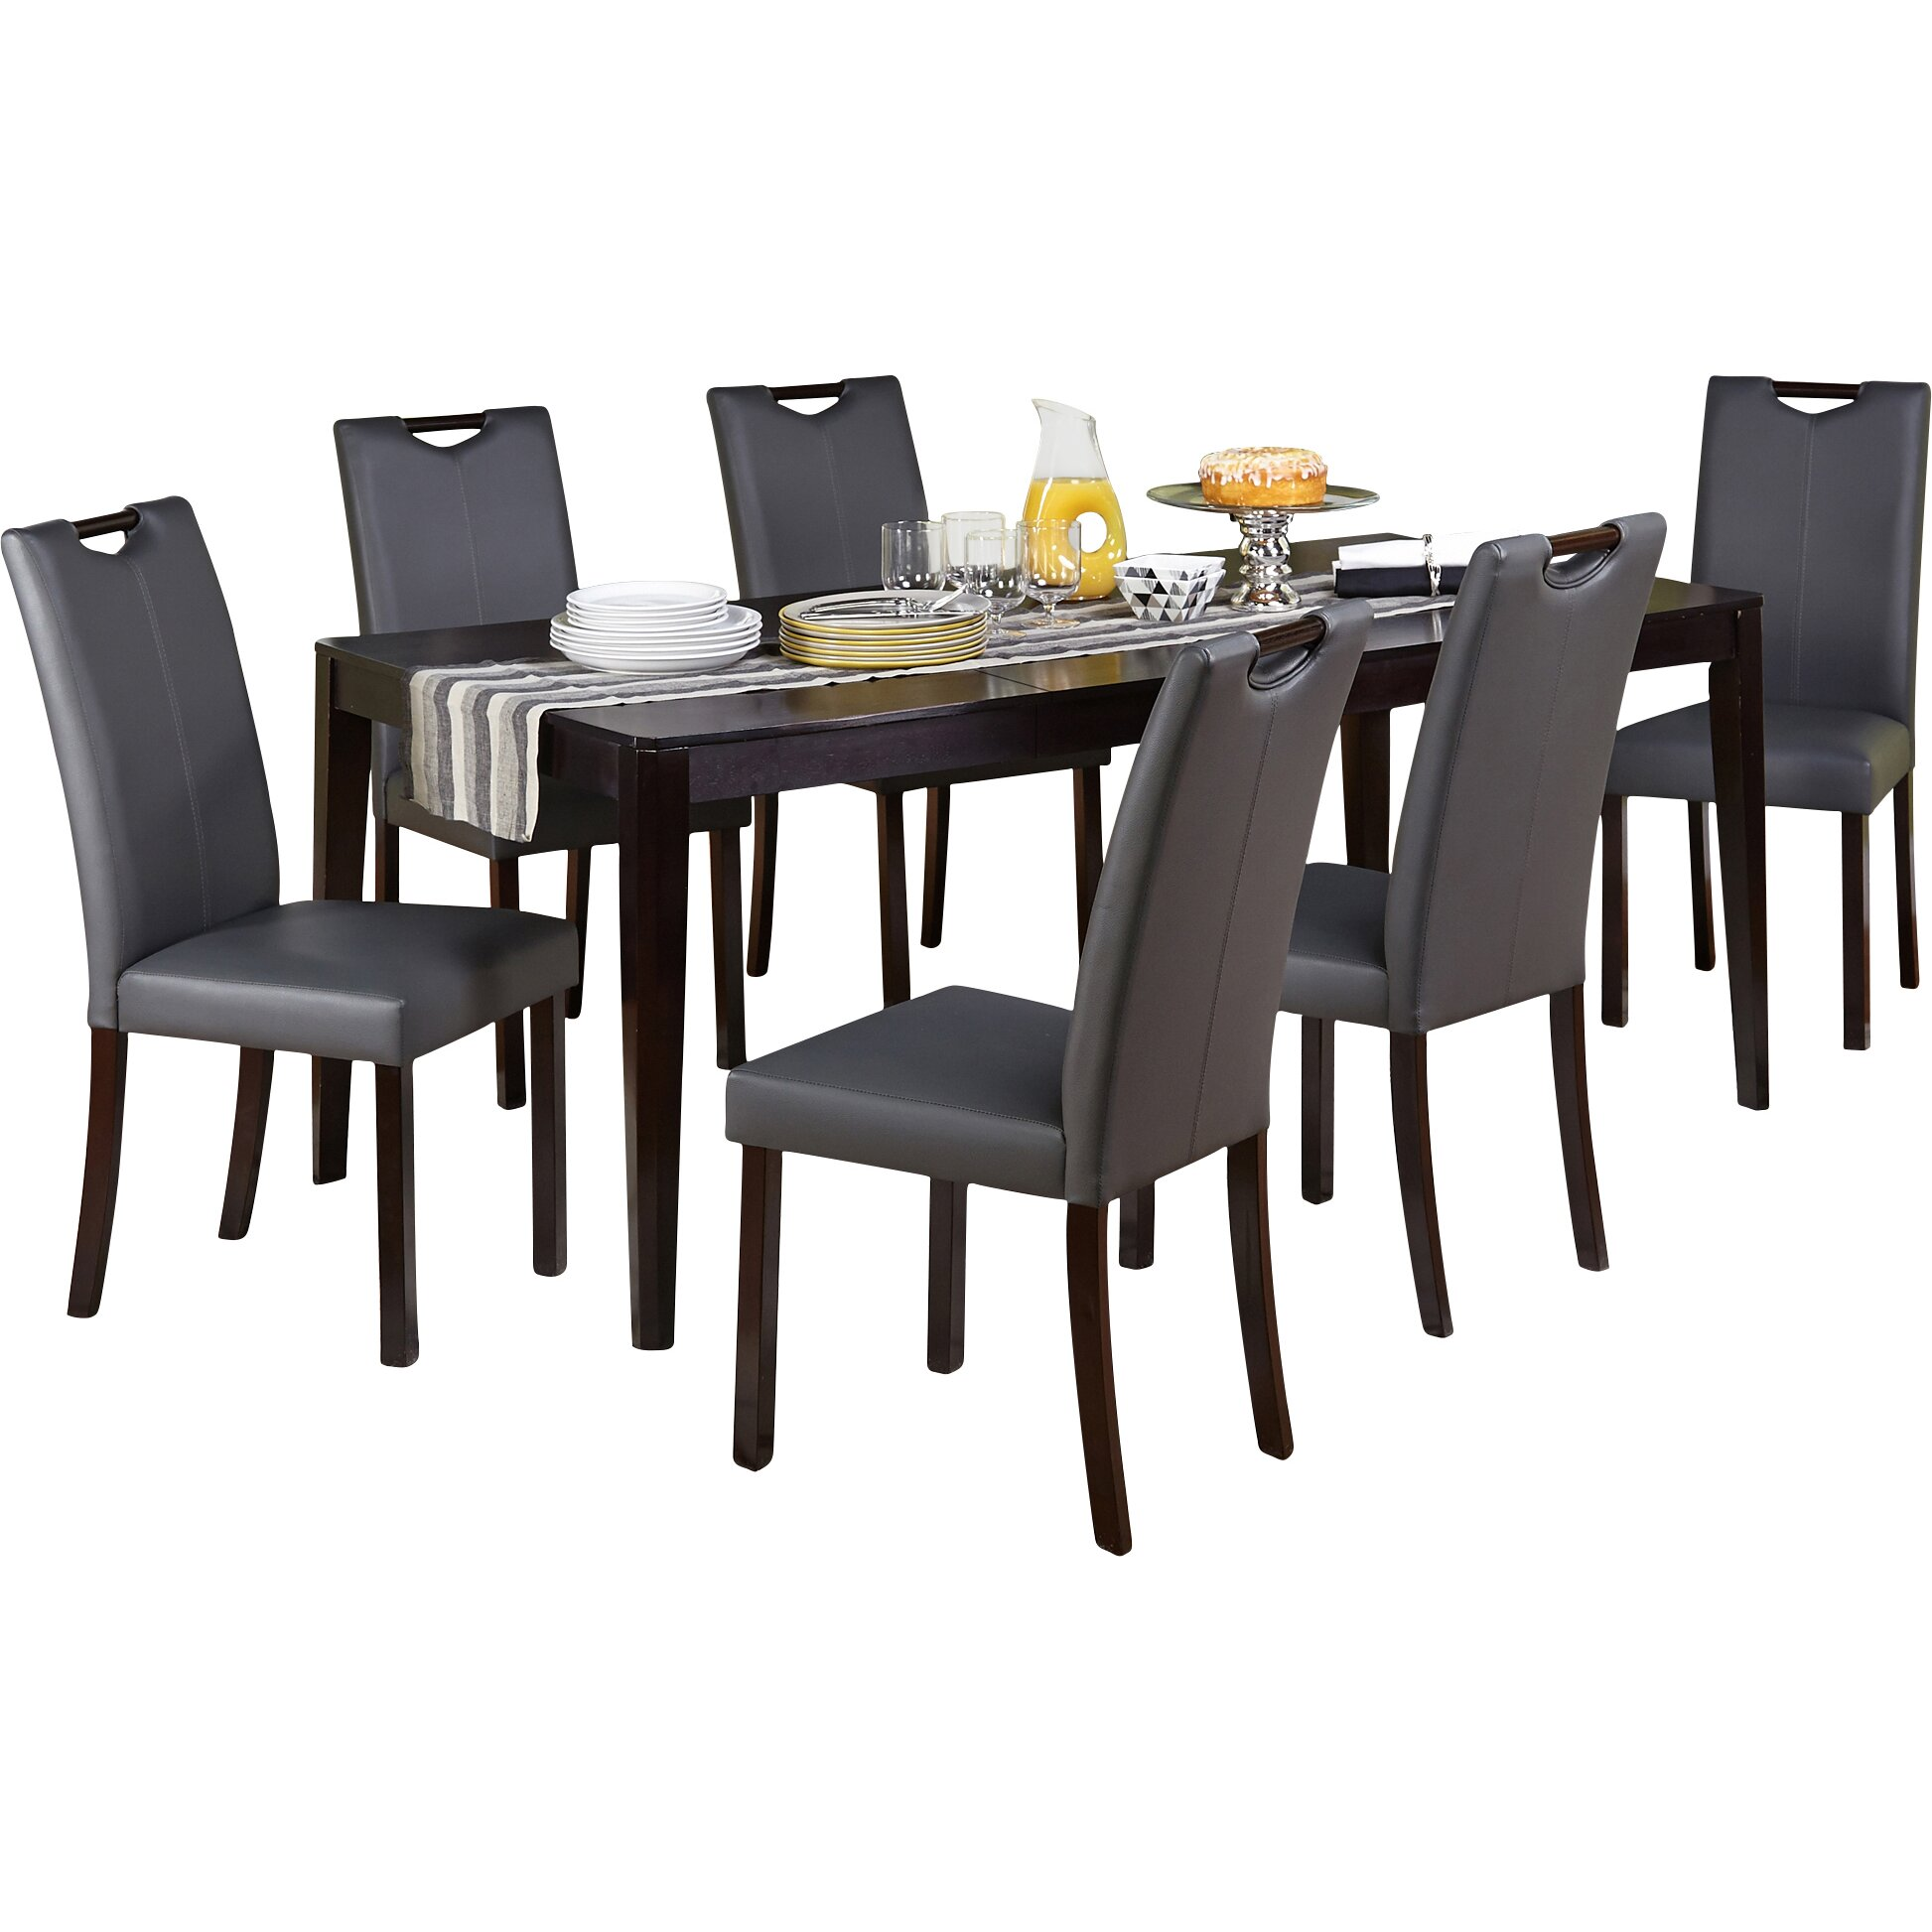 Tms tilo 7 piece dining set reviews wayfair for 7 piece dining room set